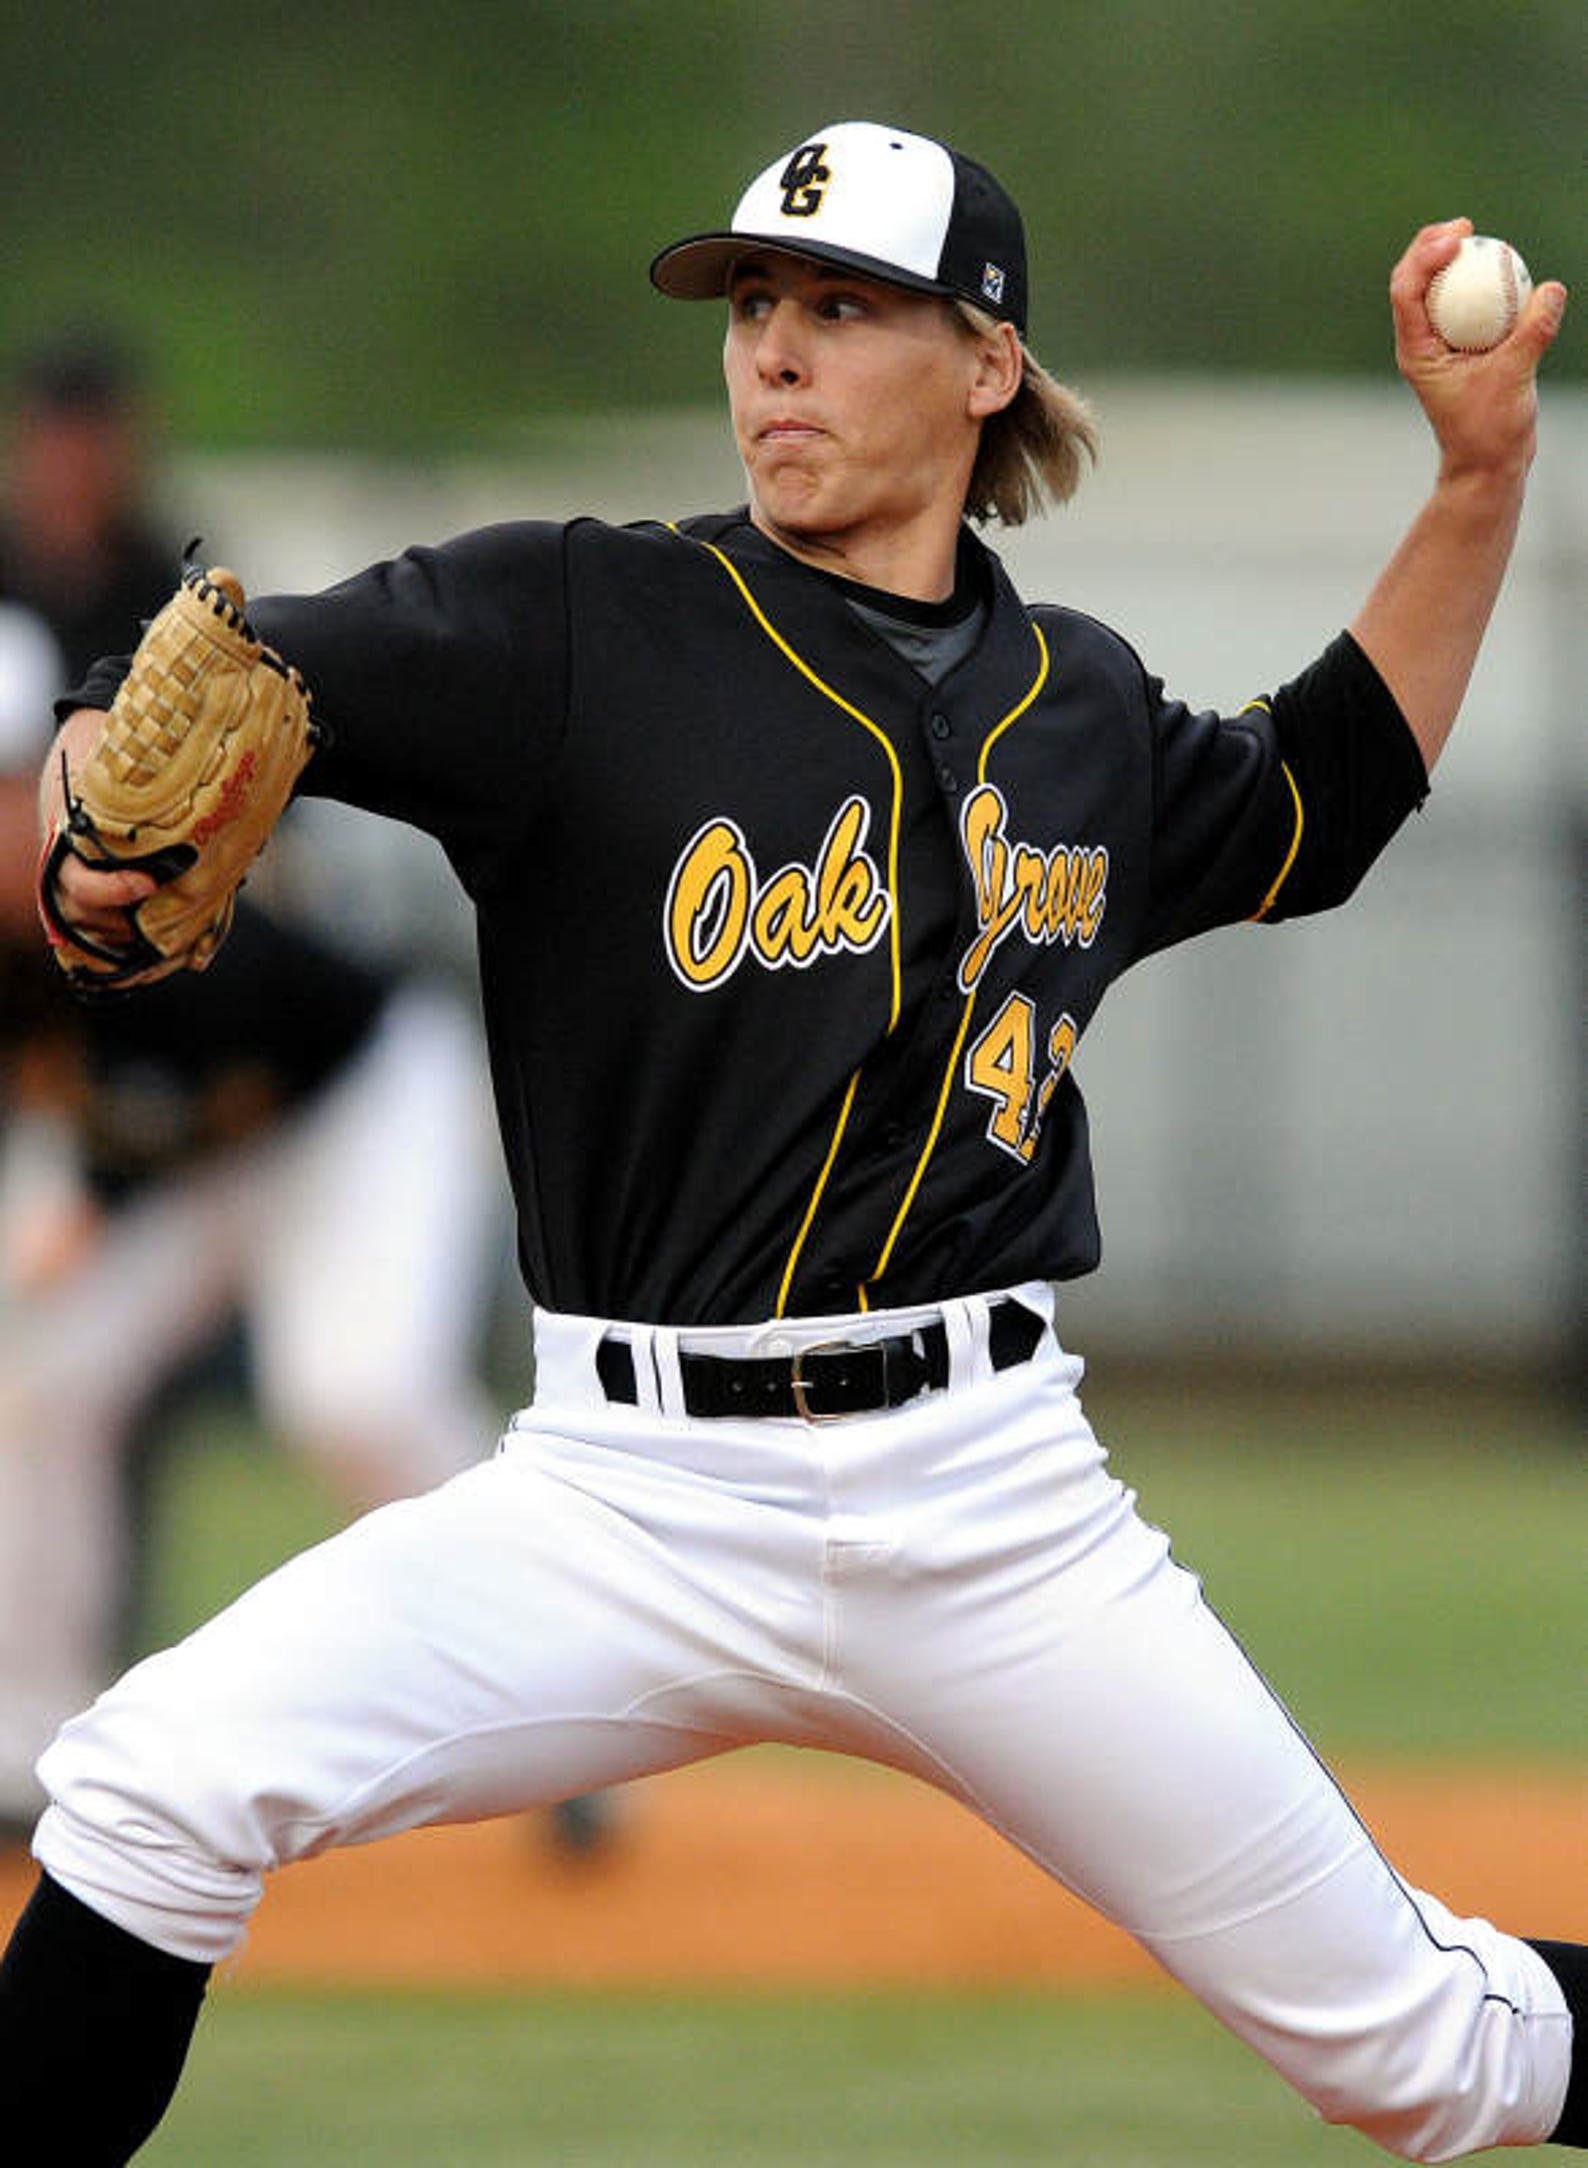 Oak Grove Vs Biloxi Baseball